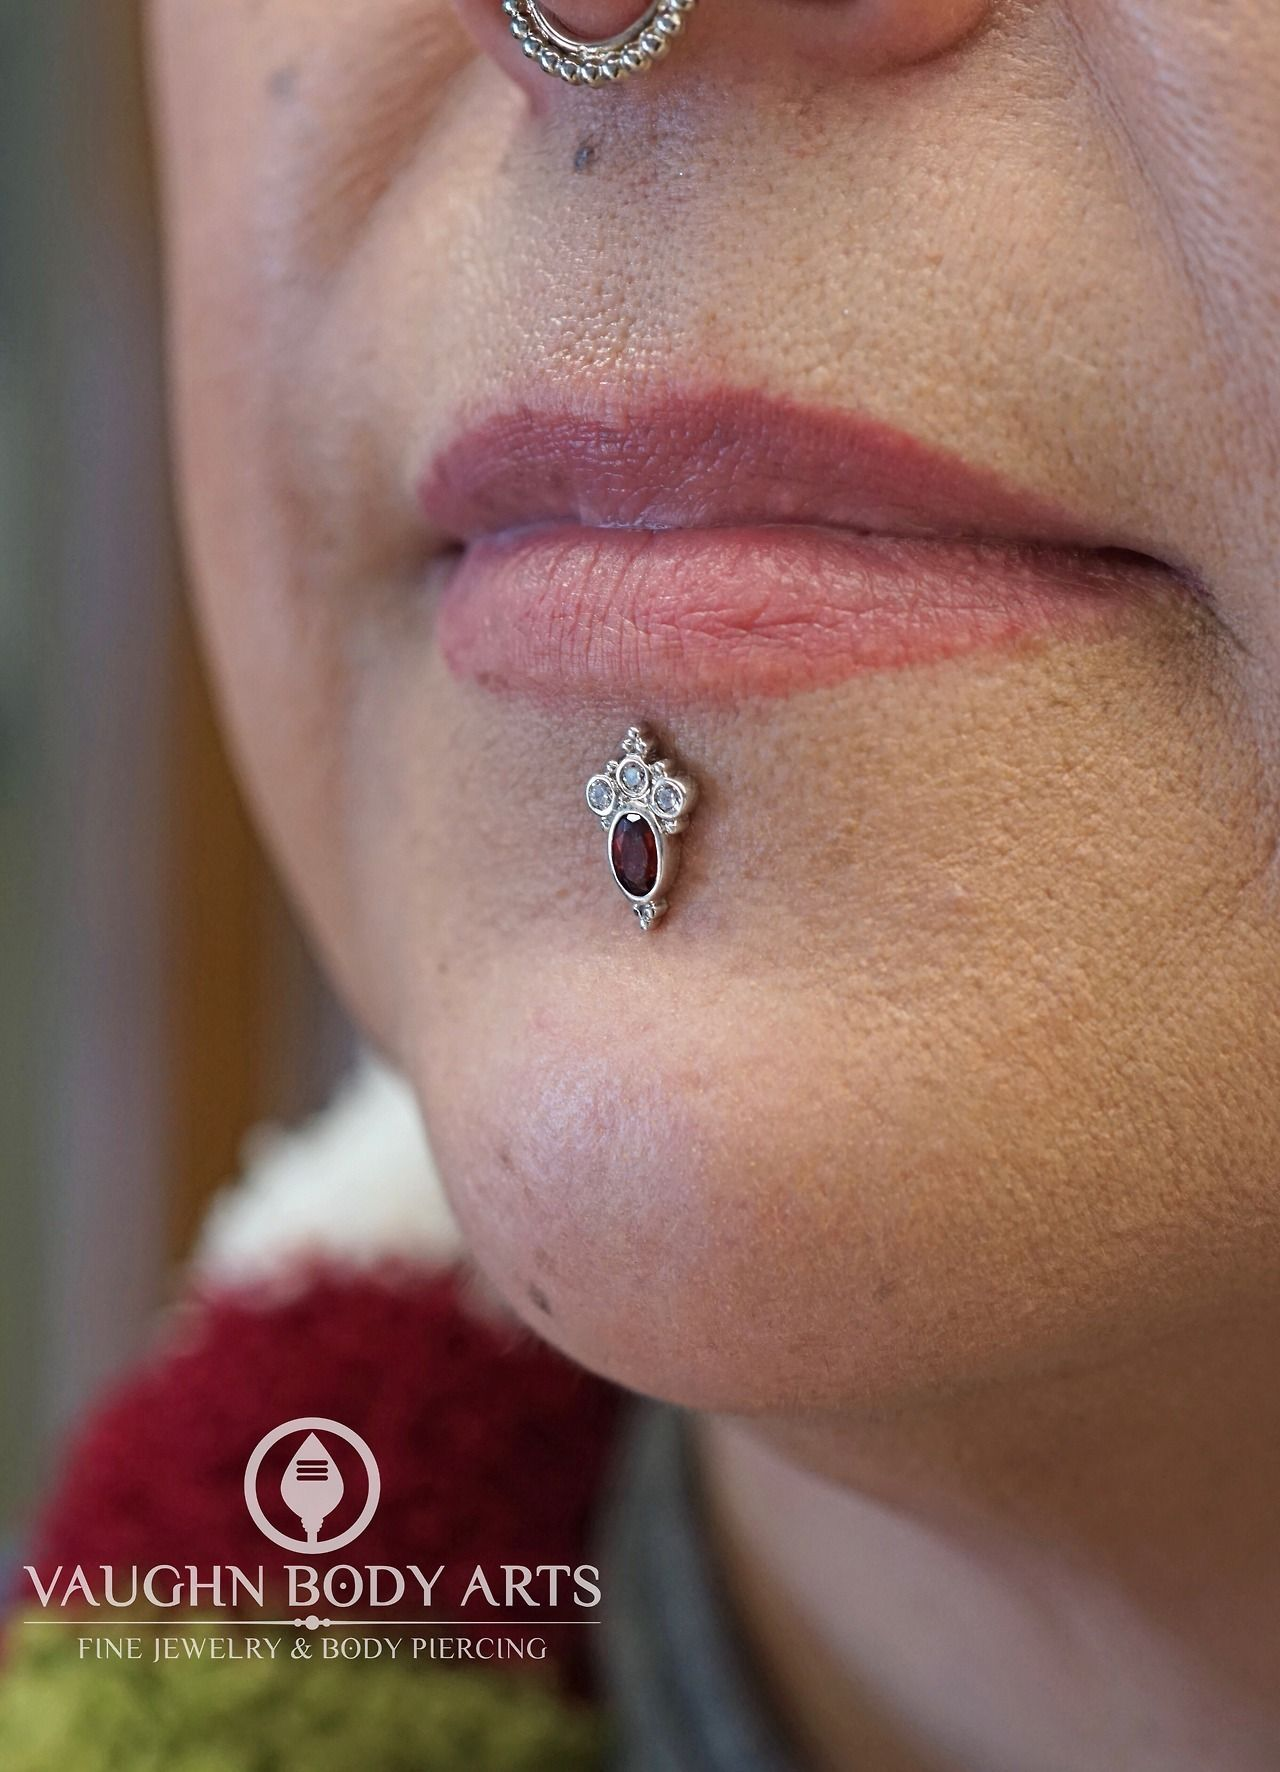 Piercing nose at home  Here is Estherus labret piercing three months after Cody pierced it